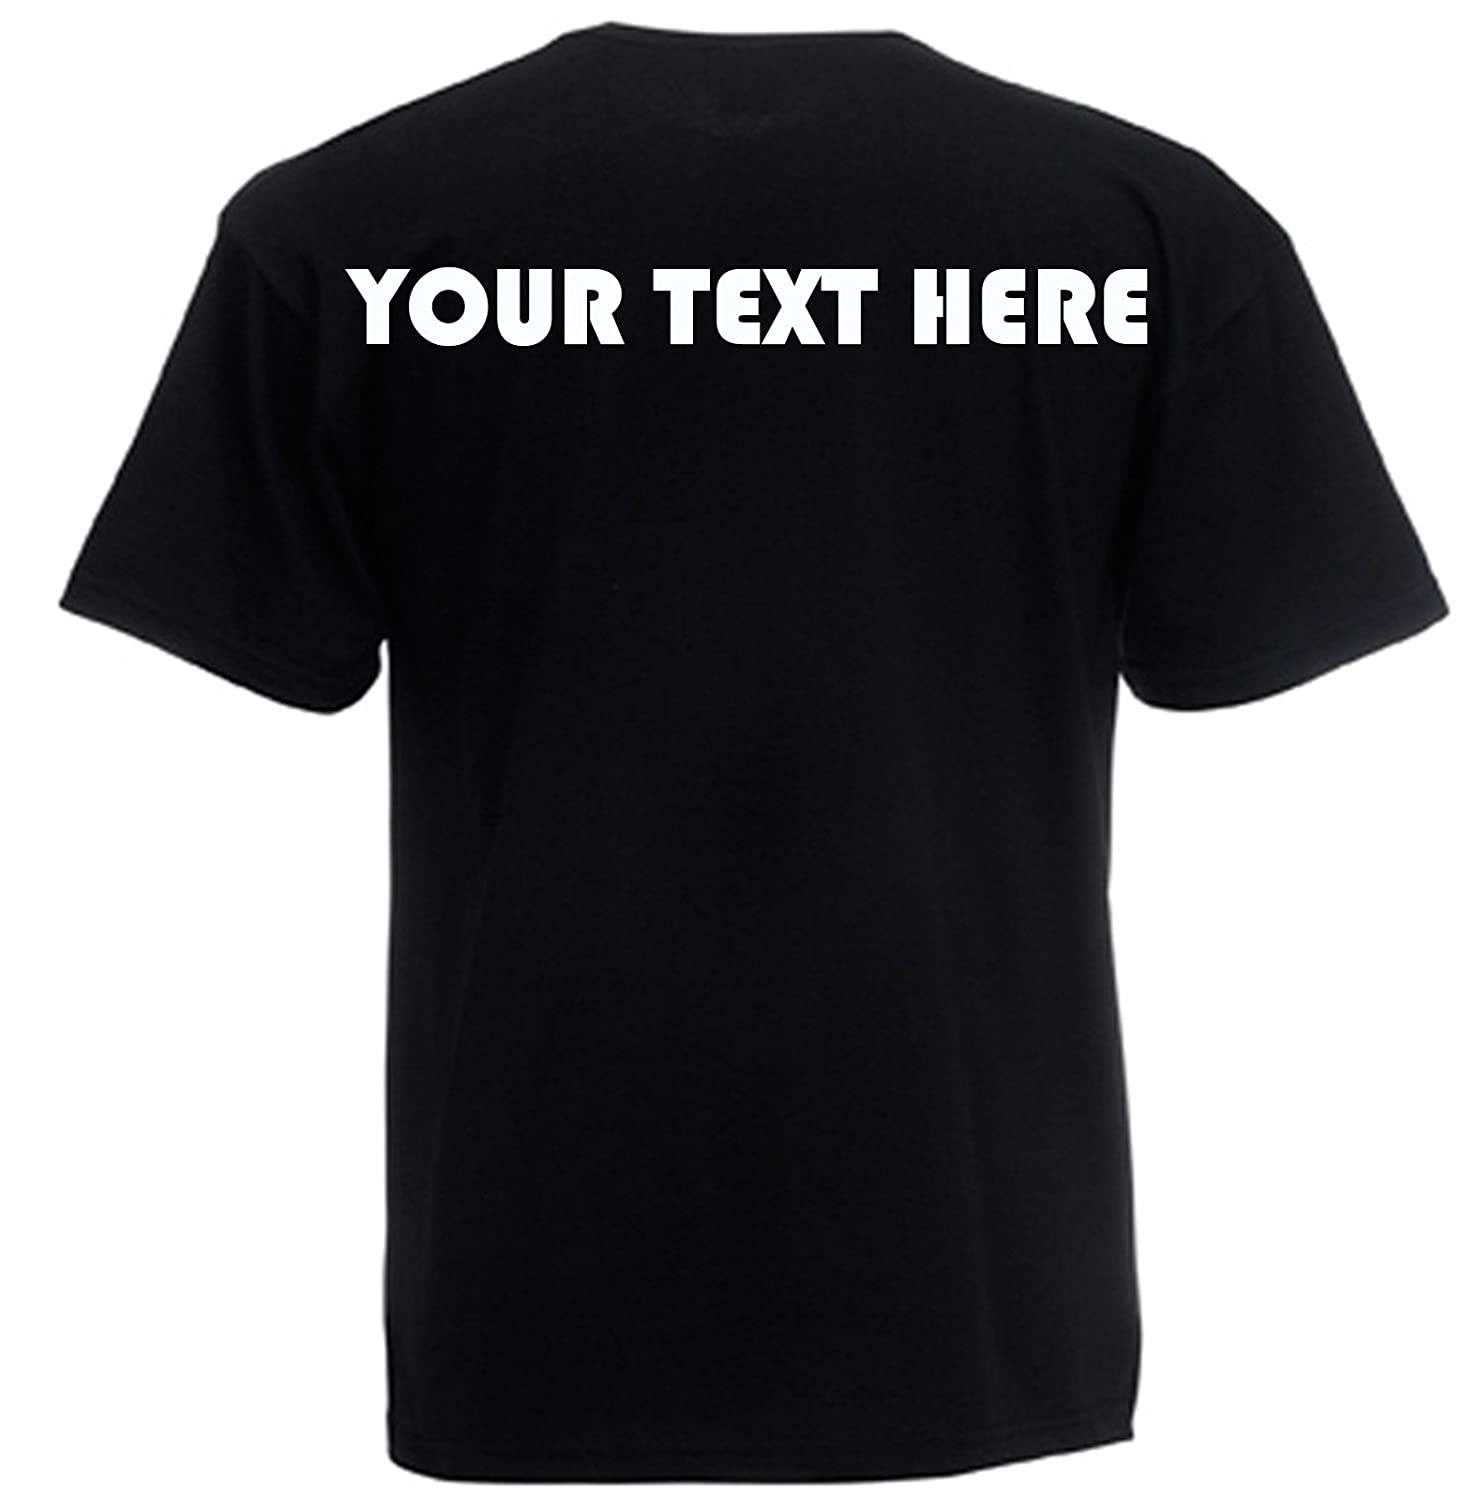 53c15c28e Custom Printed T-shirts (FRONT & BACK), Personalised By You! Great Gift!:  Amazon.co.uk: Clothing